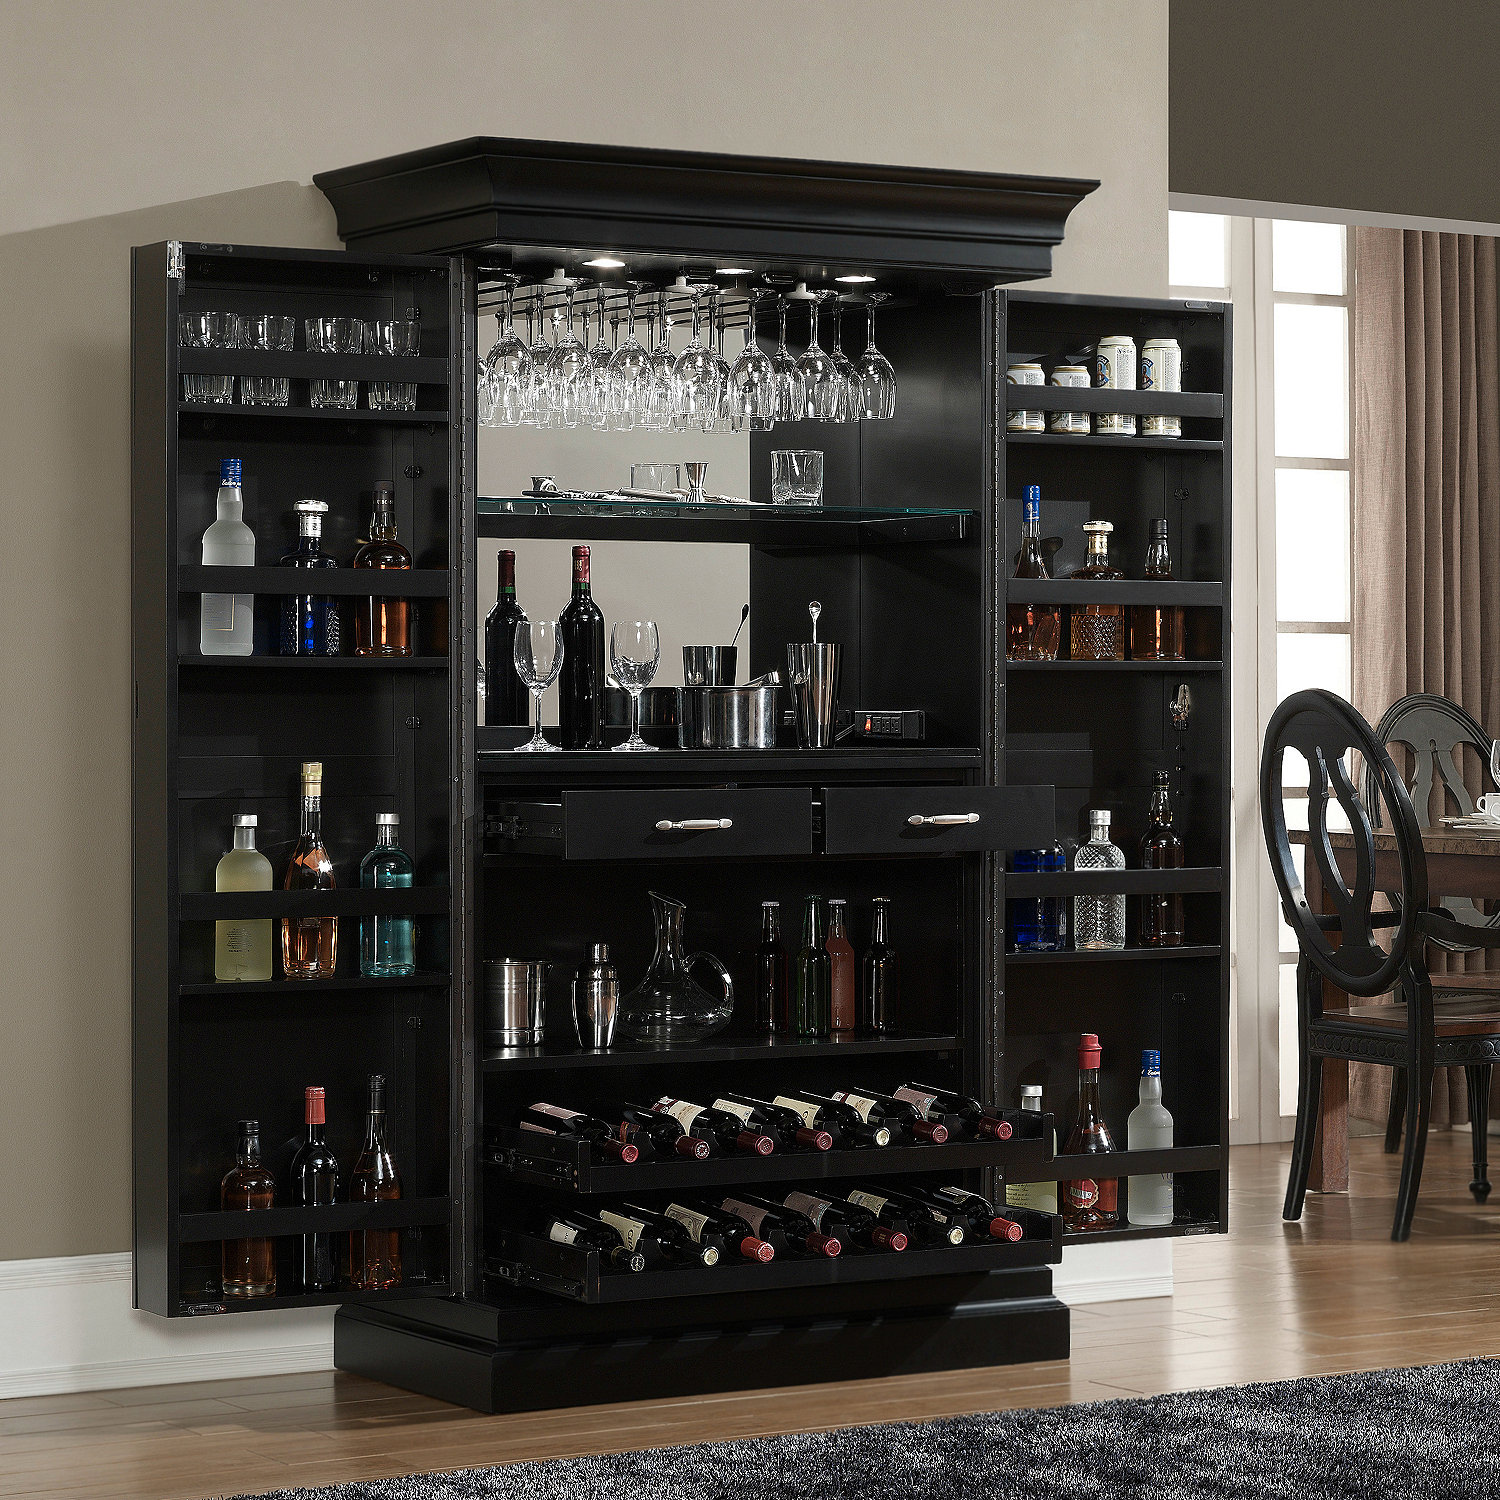 Used Oak Kitchen Cabinets For Sale Modern Wall Bar Unit Www Pixshark Com Images Galleries